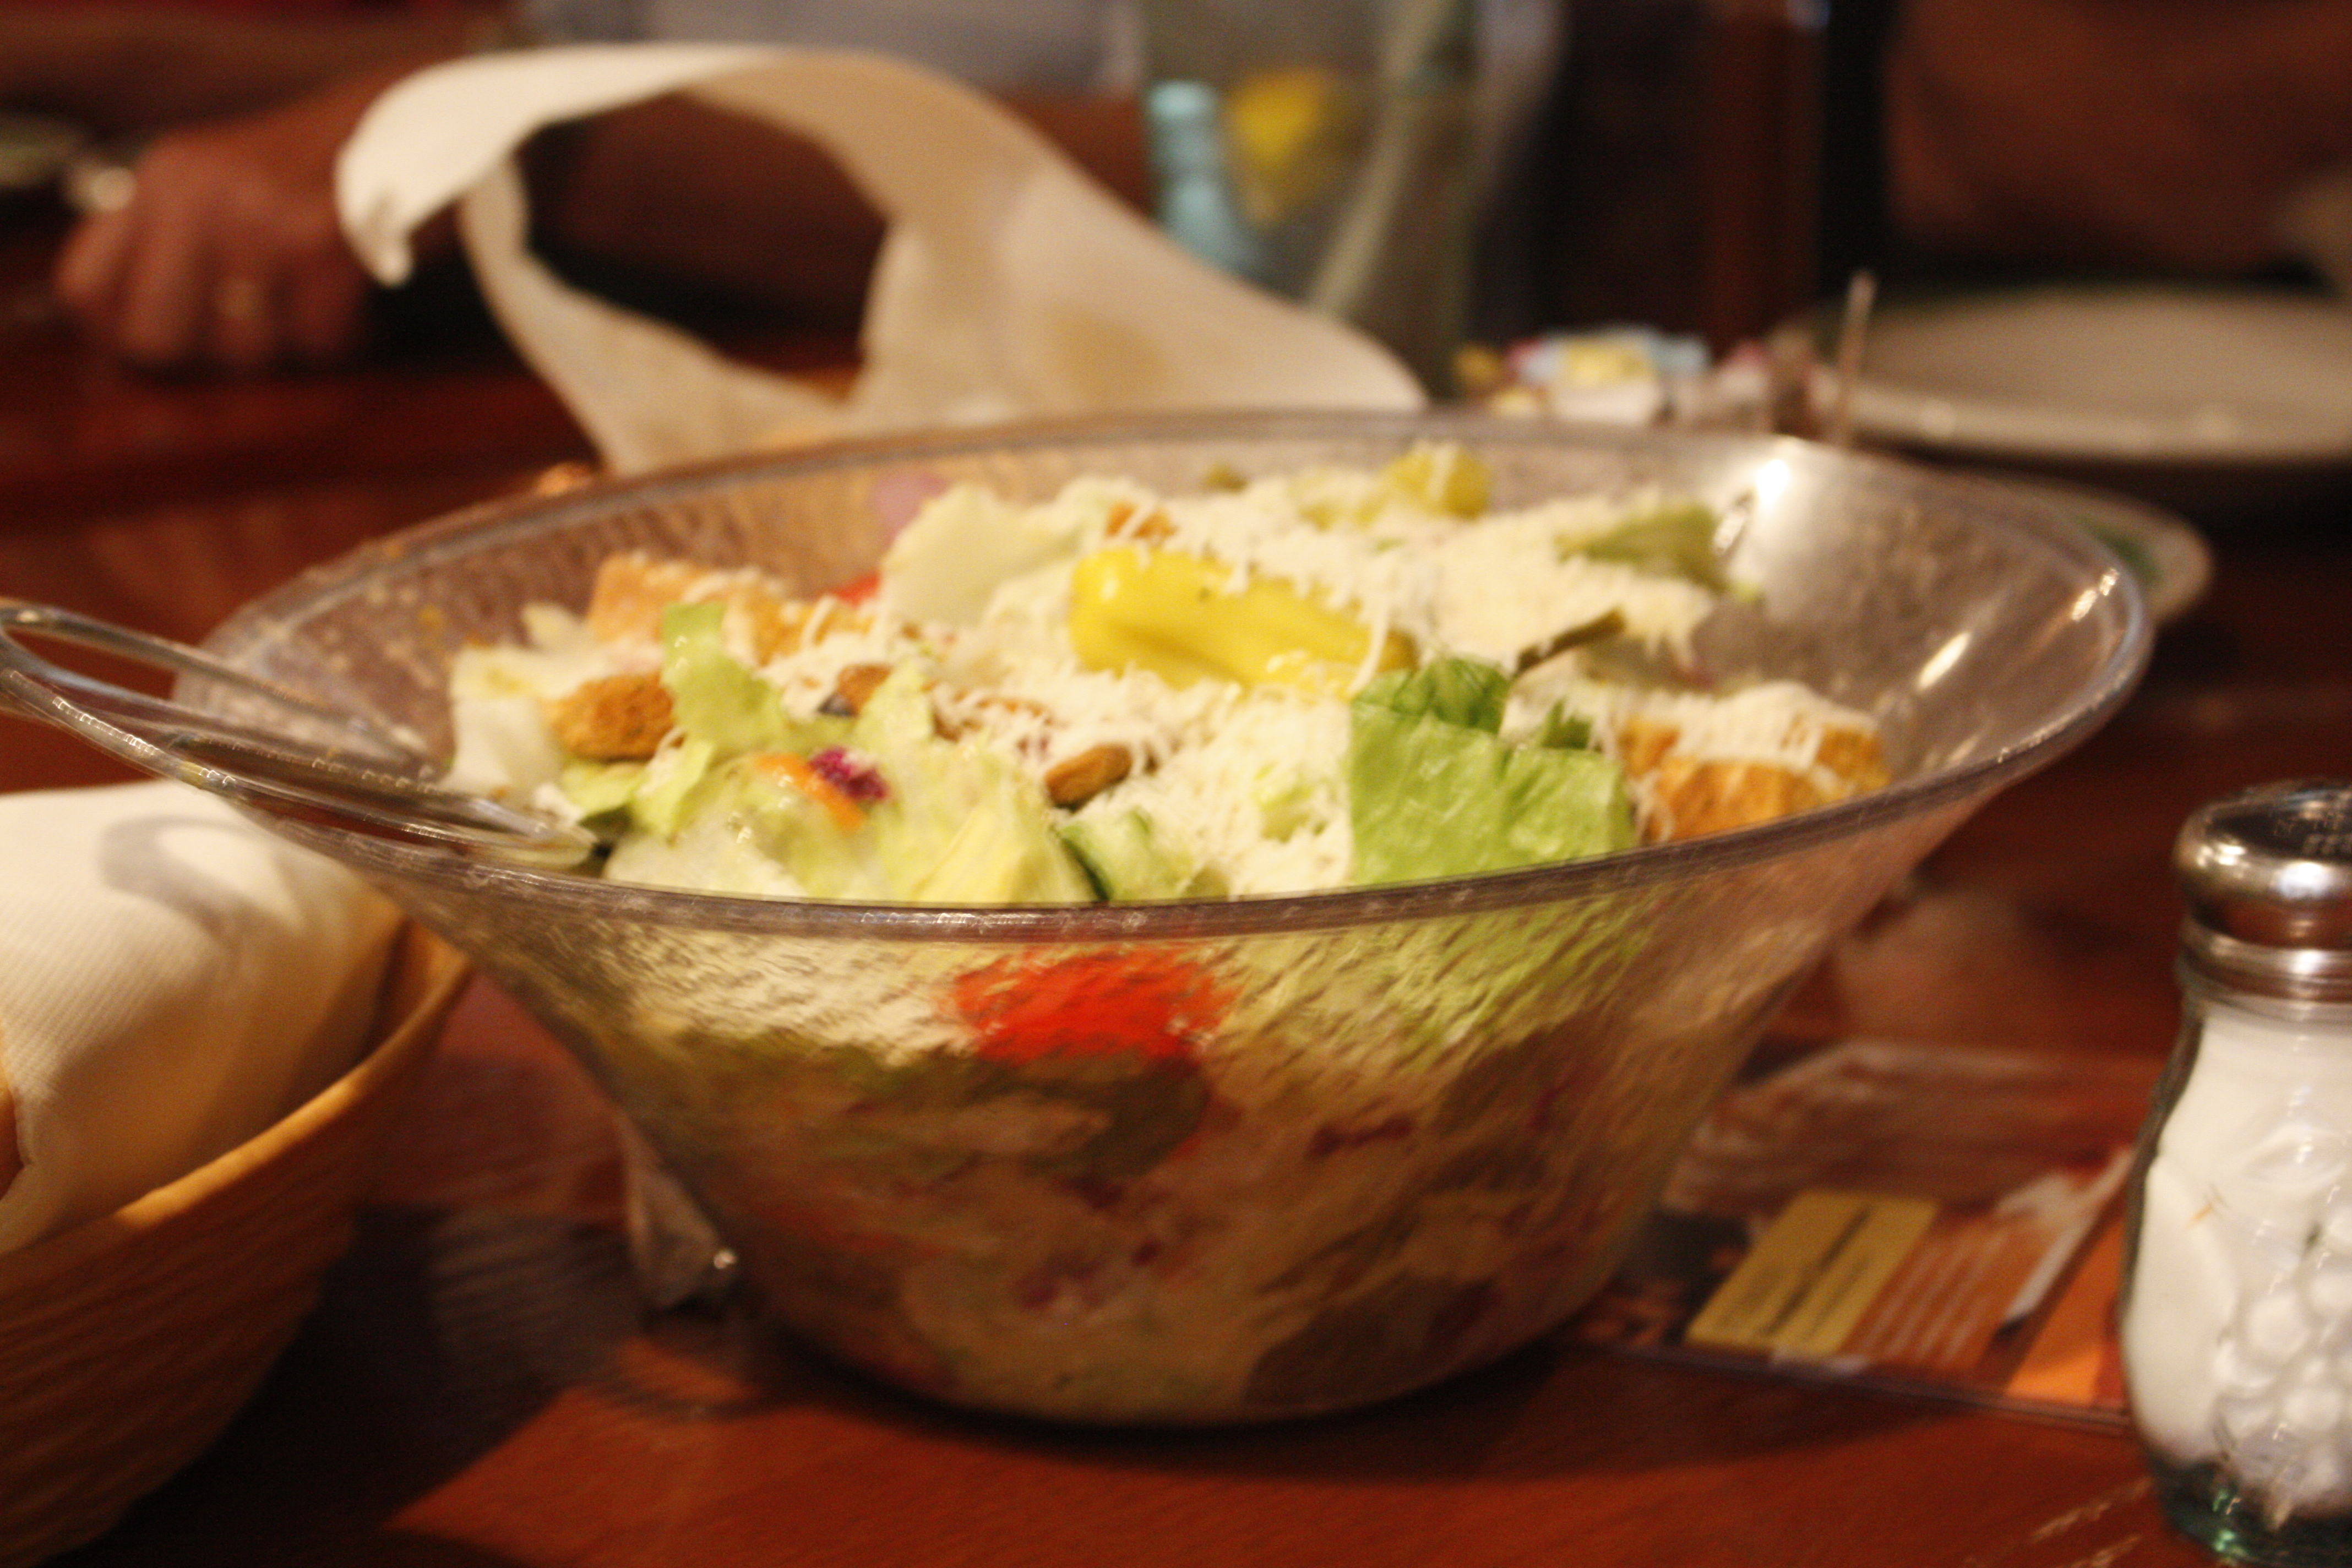 Olive Garden, Concord, NH – BakingMeHungry